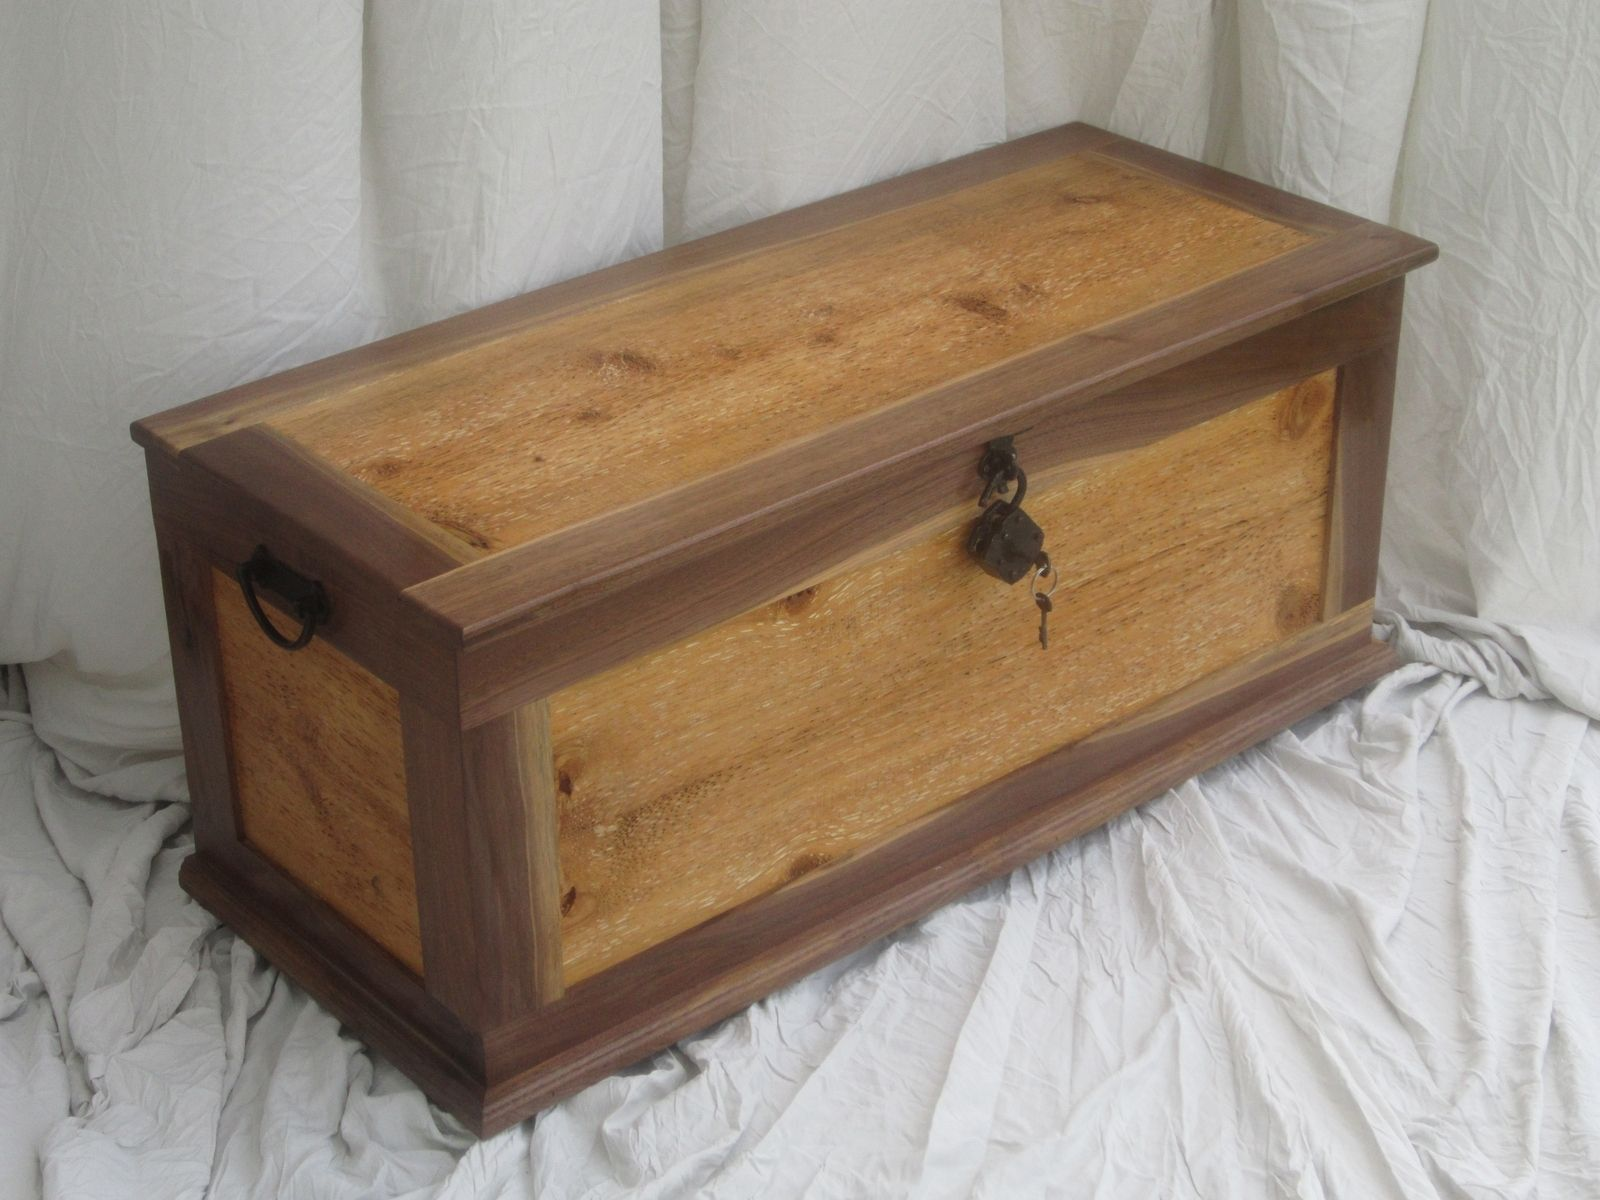 Hand Made Sea Chest Blanket Trunk By Bearkat Wood